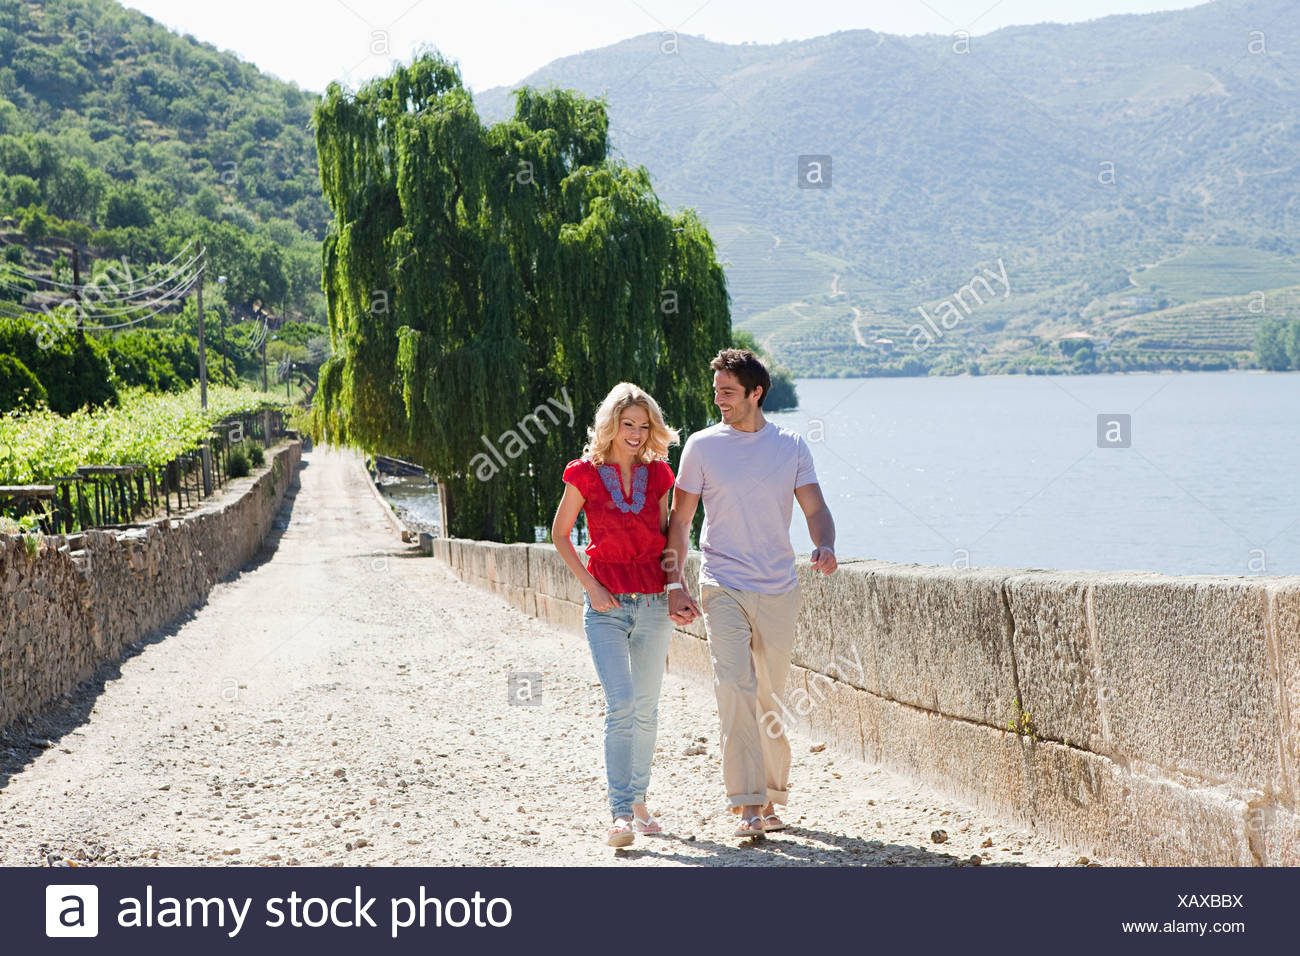 Couple in path by douro river - Stock Image